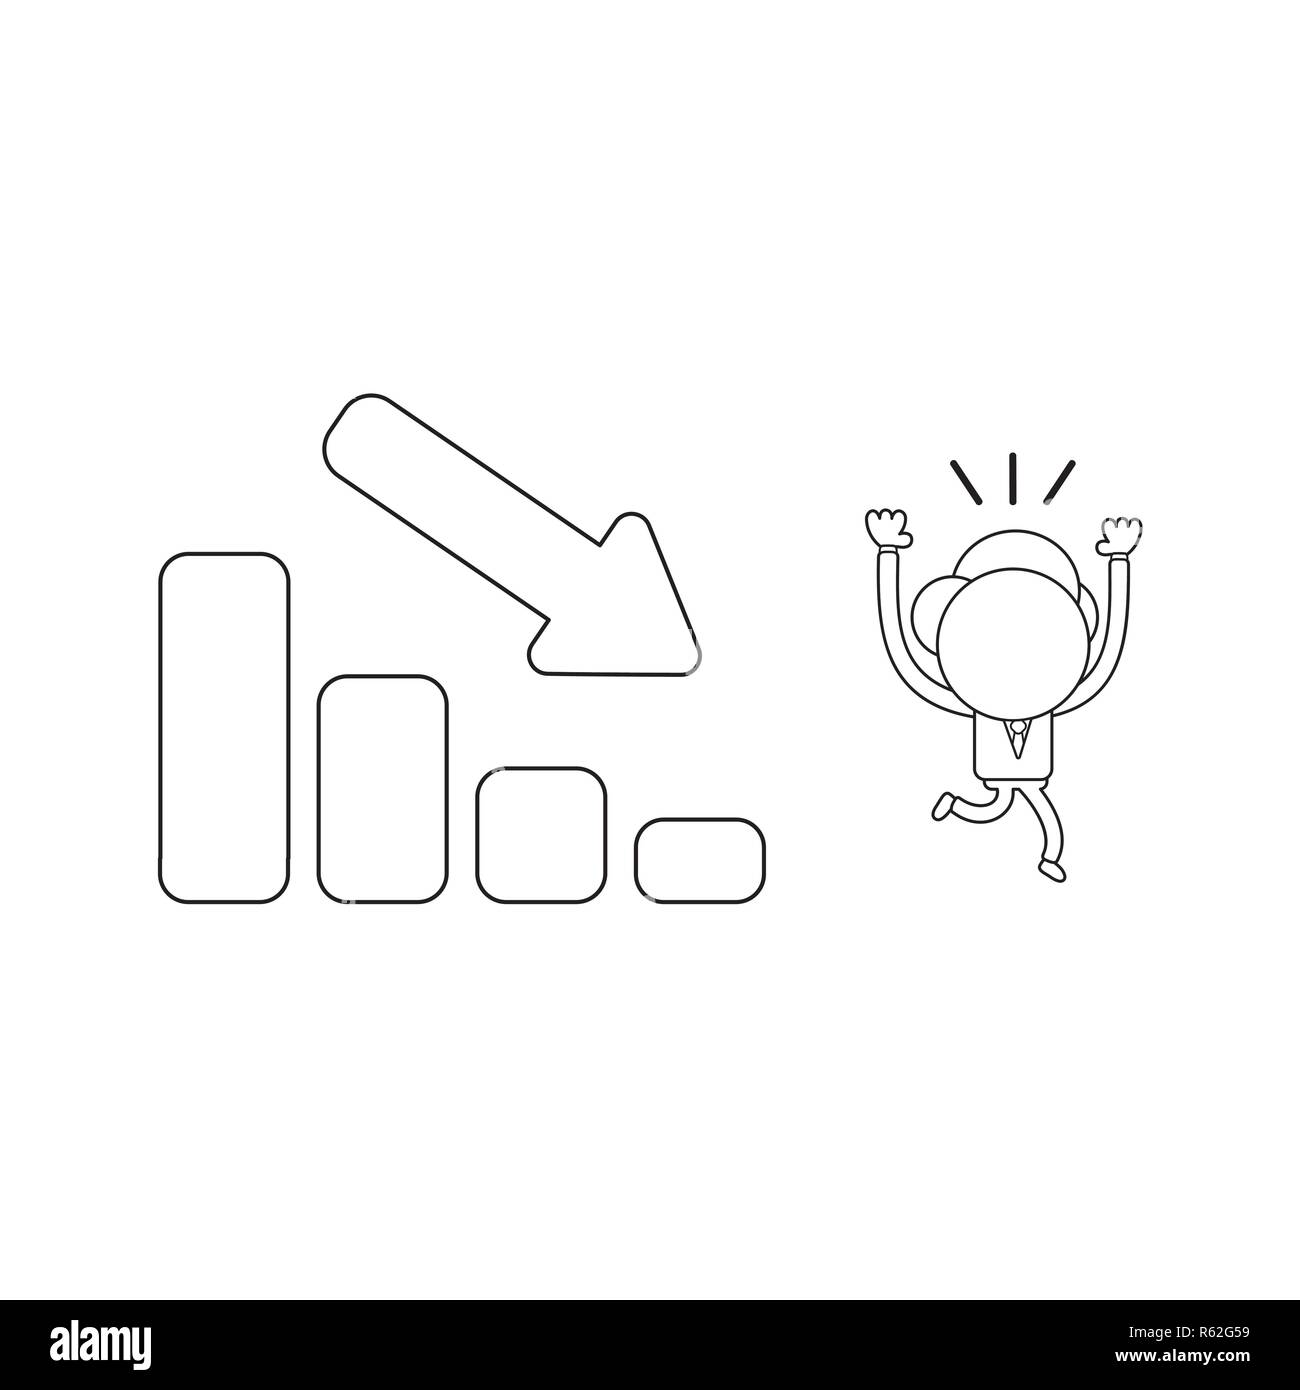 Vector illustration concept of businessman character running away fom sales bar graph moving down. Black outline. - Stock Image